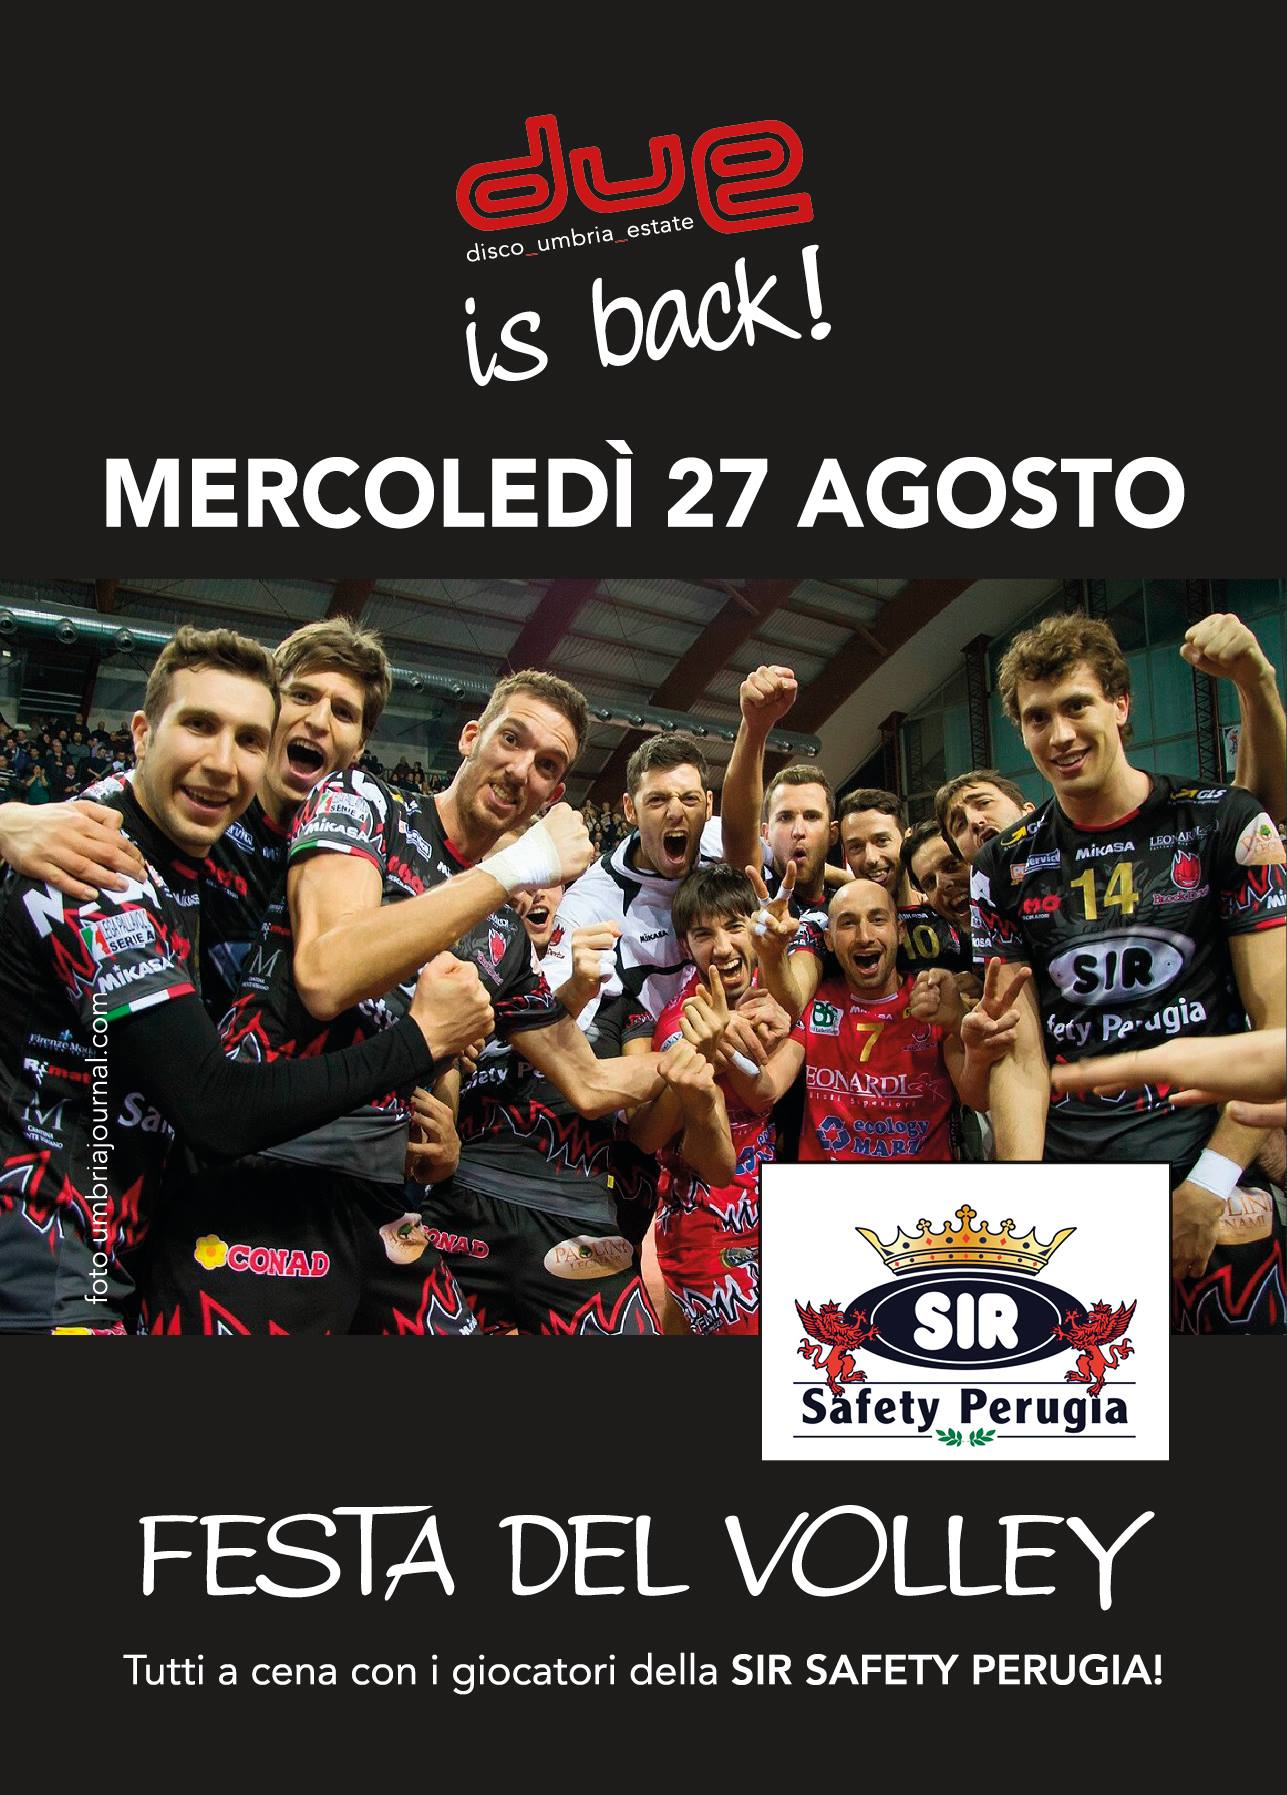 Cena del Volley con la Sir Safety Perugia